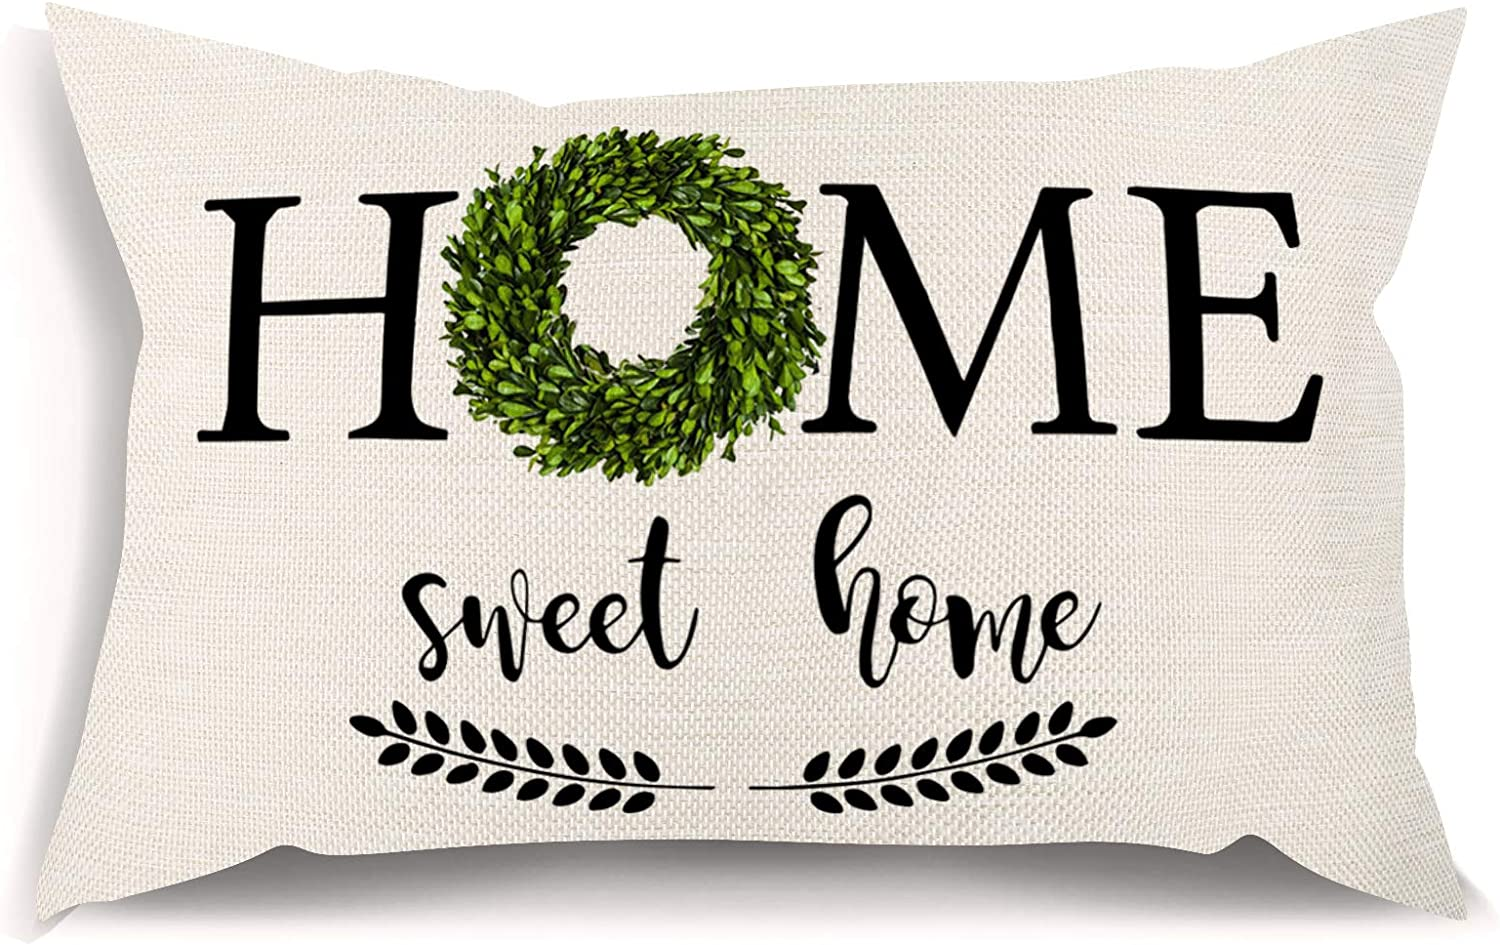 Grech Farmhouse Pillow Covers with Home Sweet Home Quote 12x 20 Inch Lumbar Throw Pillow Covers with Saying Rustic Decorative Pillowcase Housewarming Gifts Family Room Décor